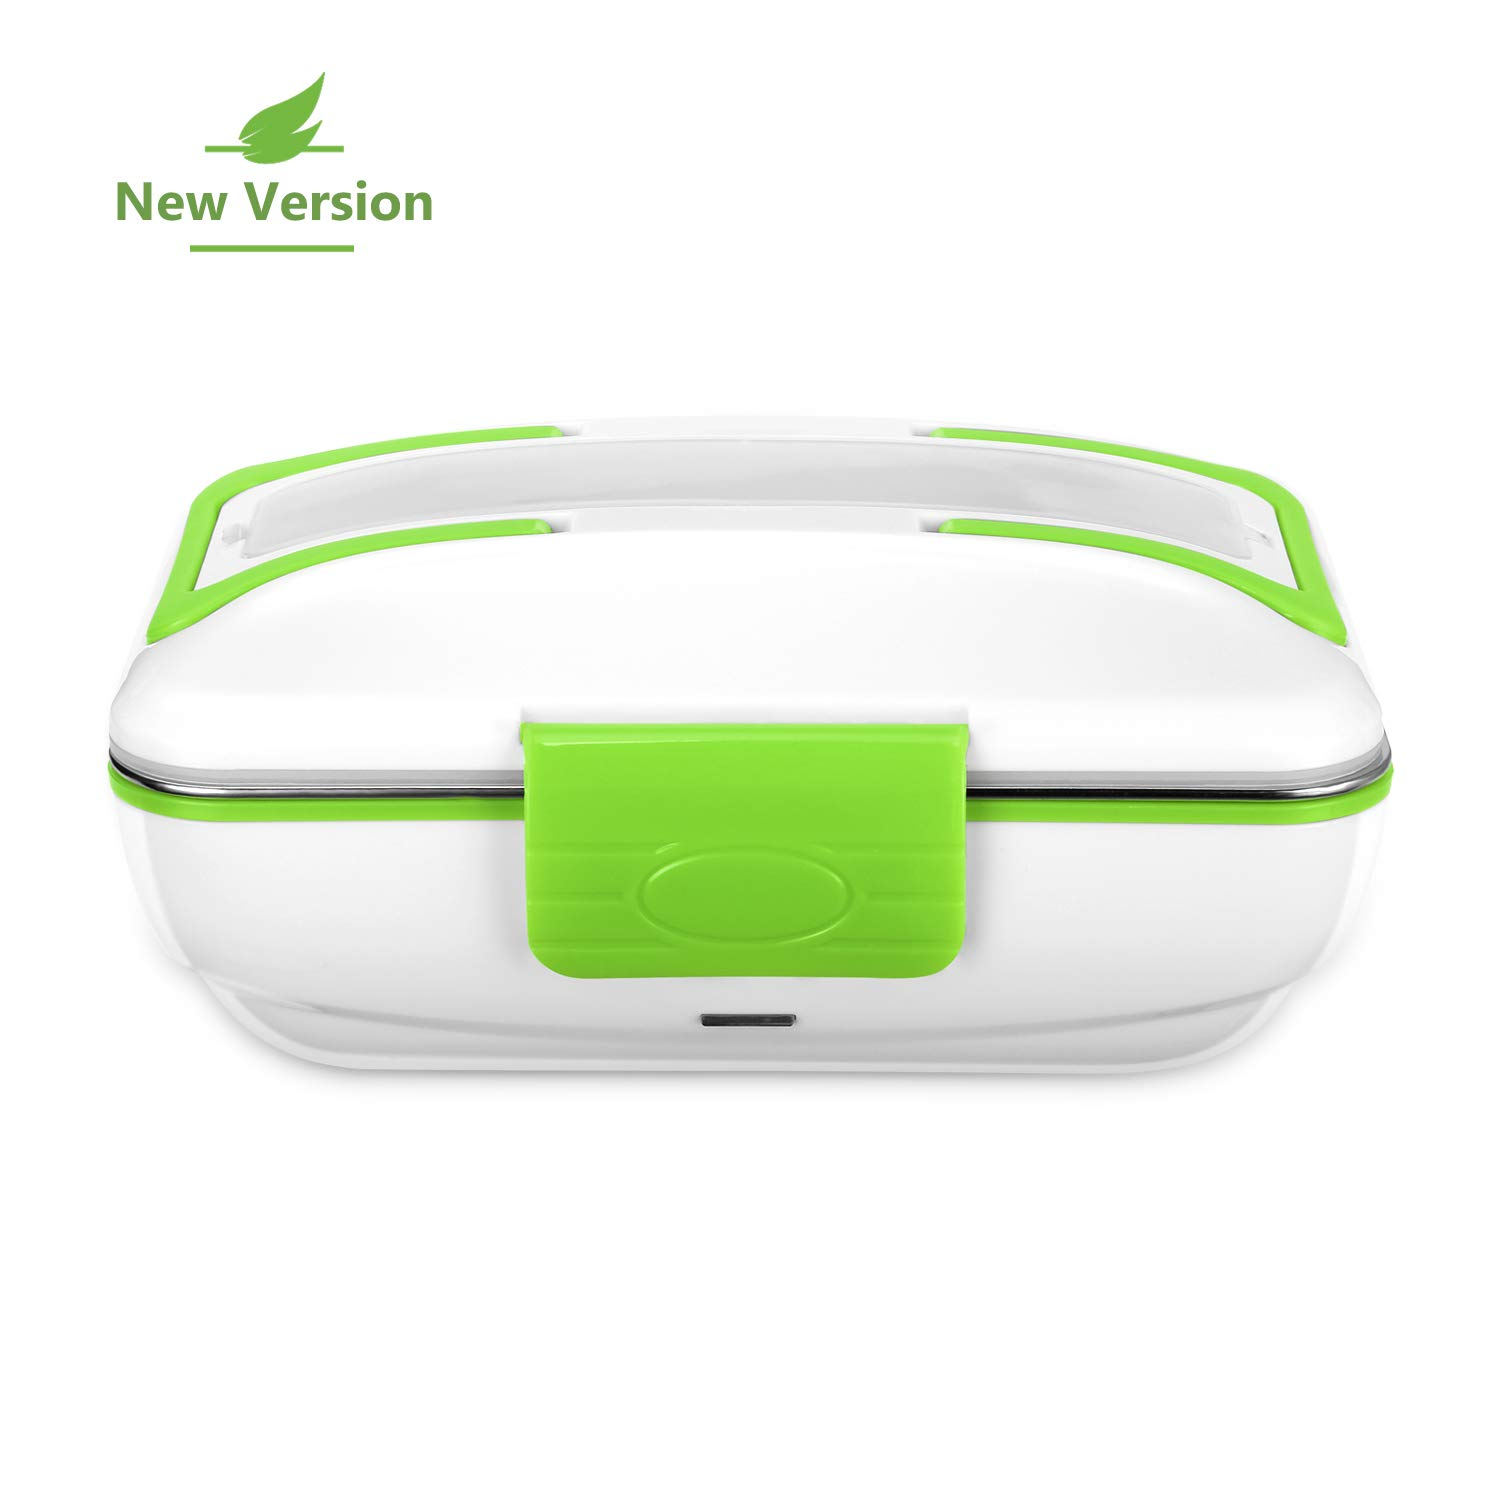 YOHOOLYO Electric Lunch Box Food Heater Portable with Removable Stainless Steel Container Food Grade Material Smile&Satisfaction COMIN18JU077437